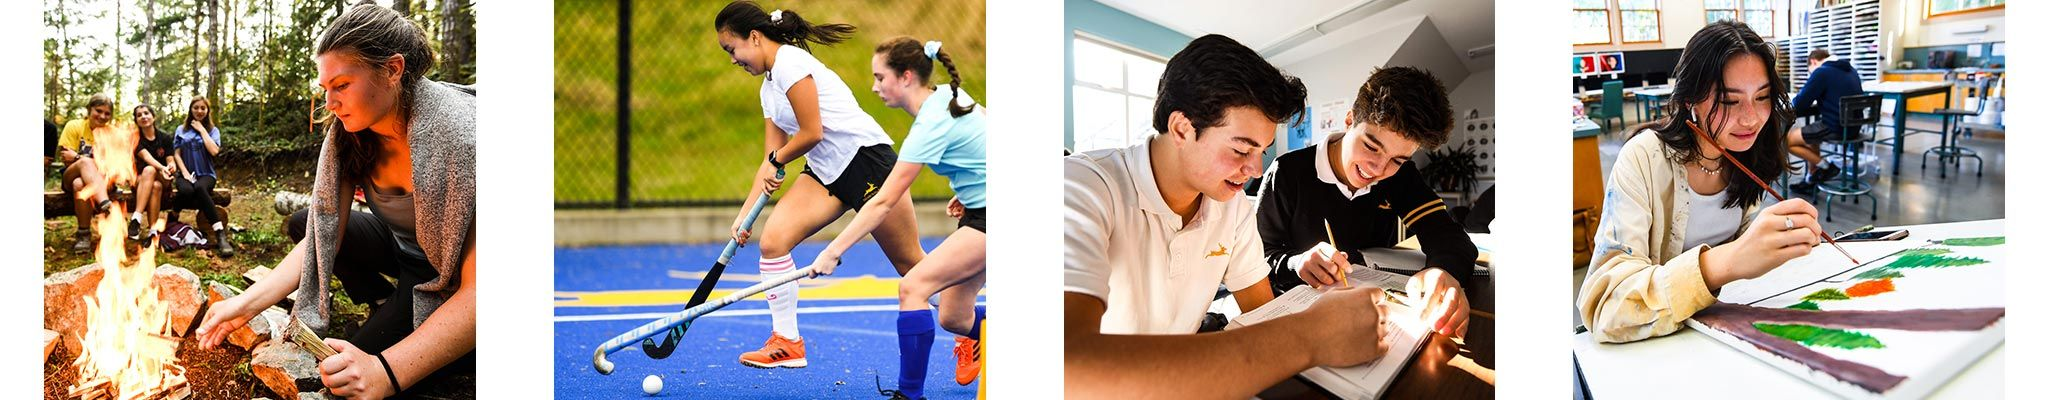 Shawnigan students participate in a wide range of school activities